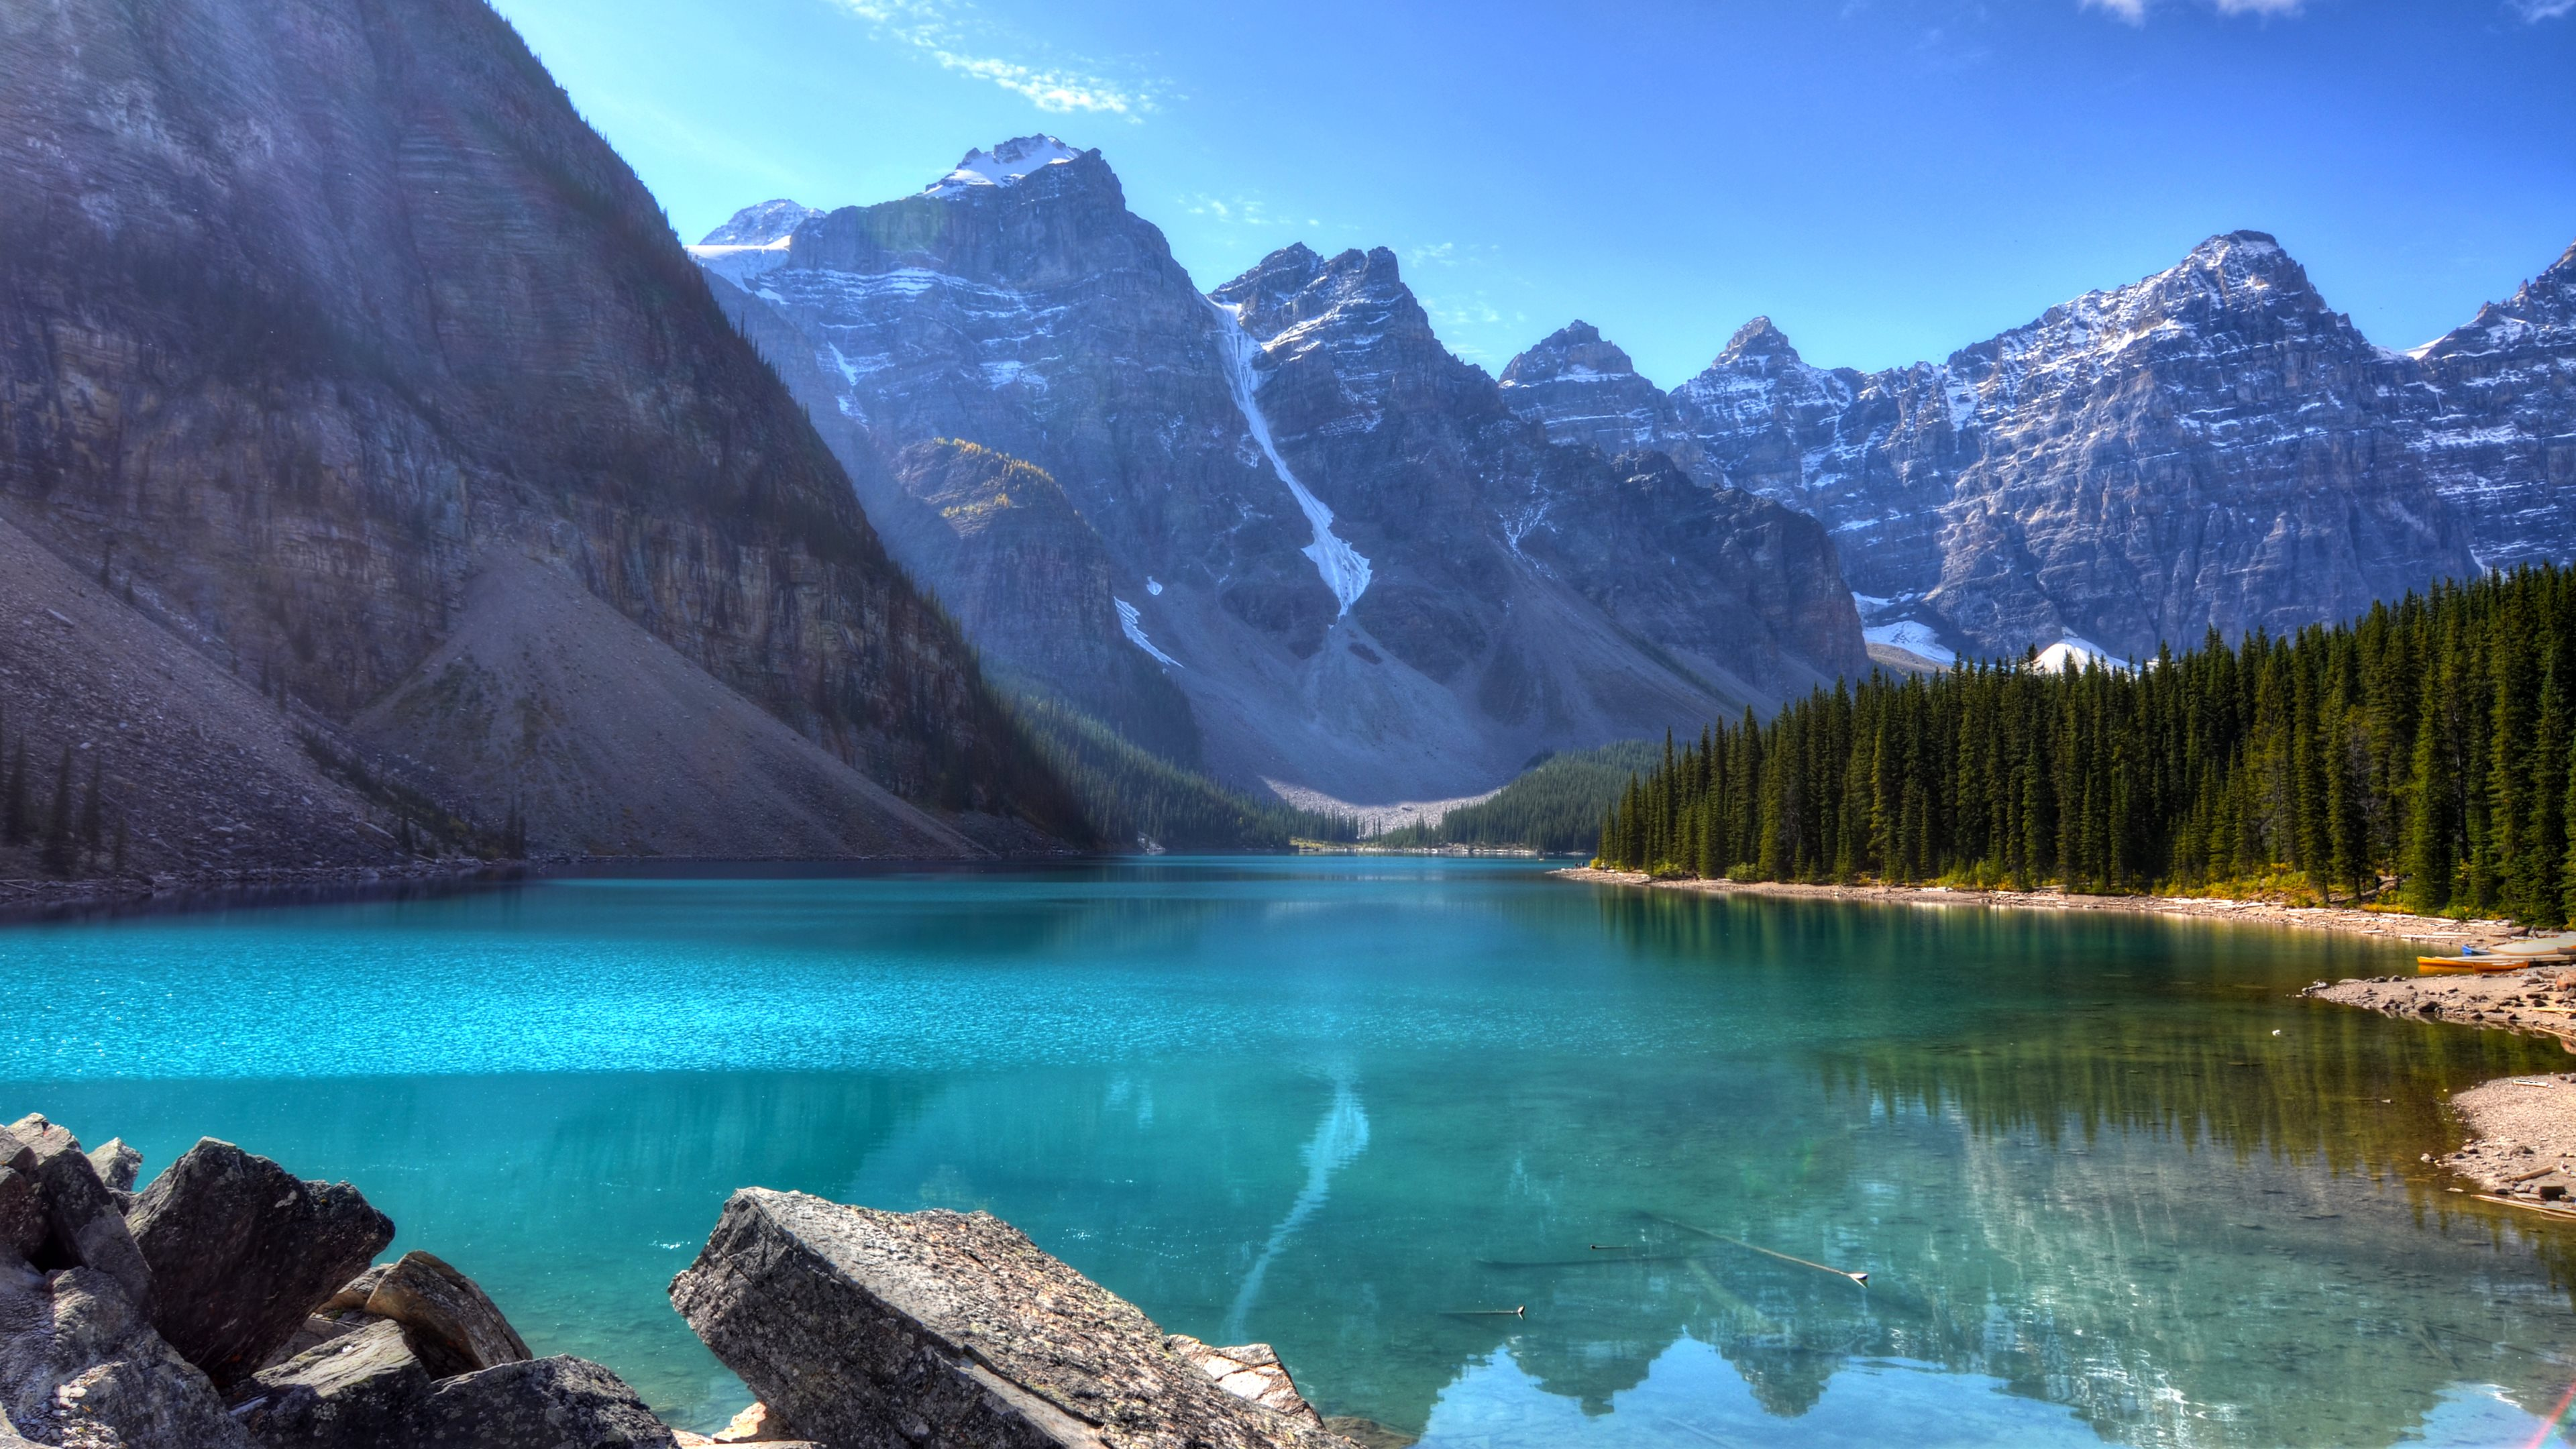 32 moraine lake hd wallpapers | background images - wallpaper abyss